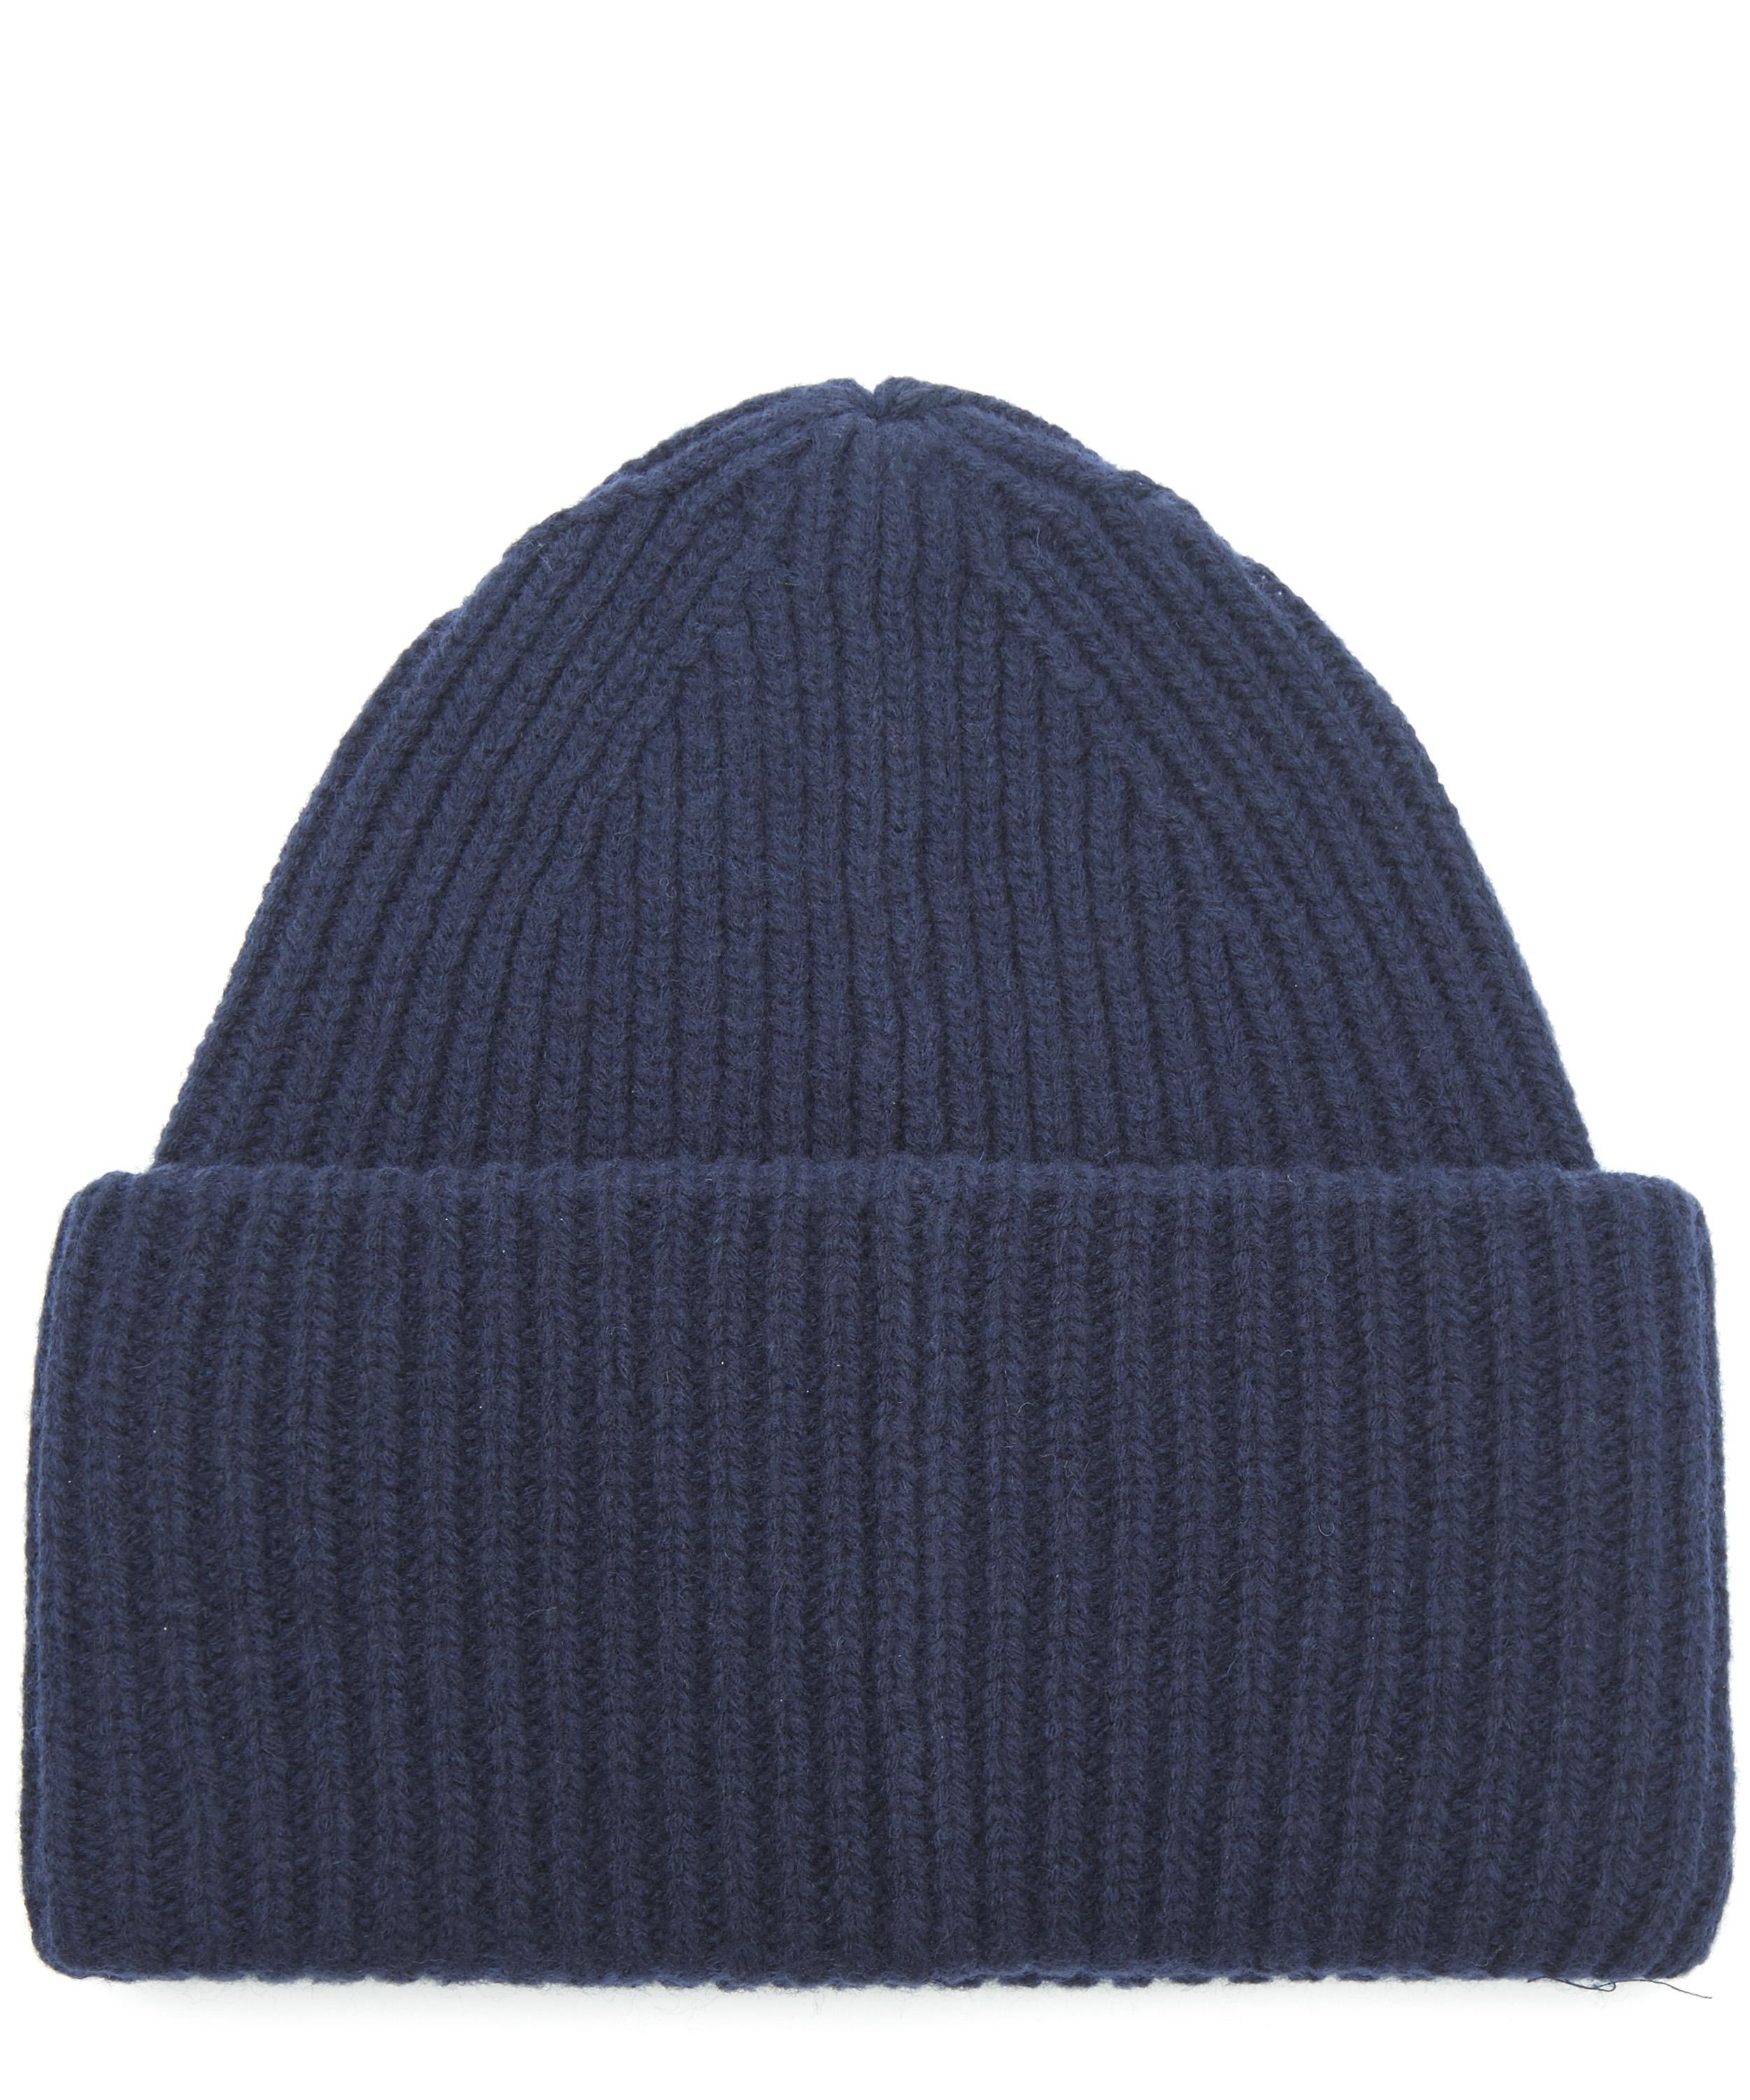 19e6fb61e28 Lyst - Acne Studios Pansy Face Wool Beanie Hat in Blue for Men